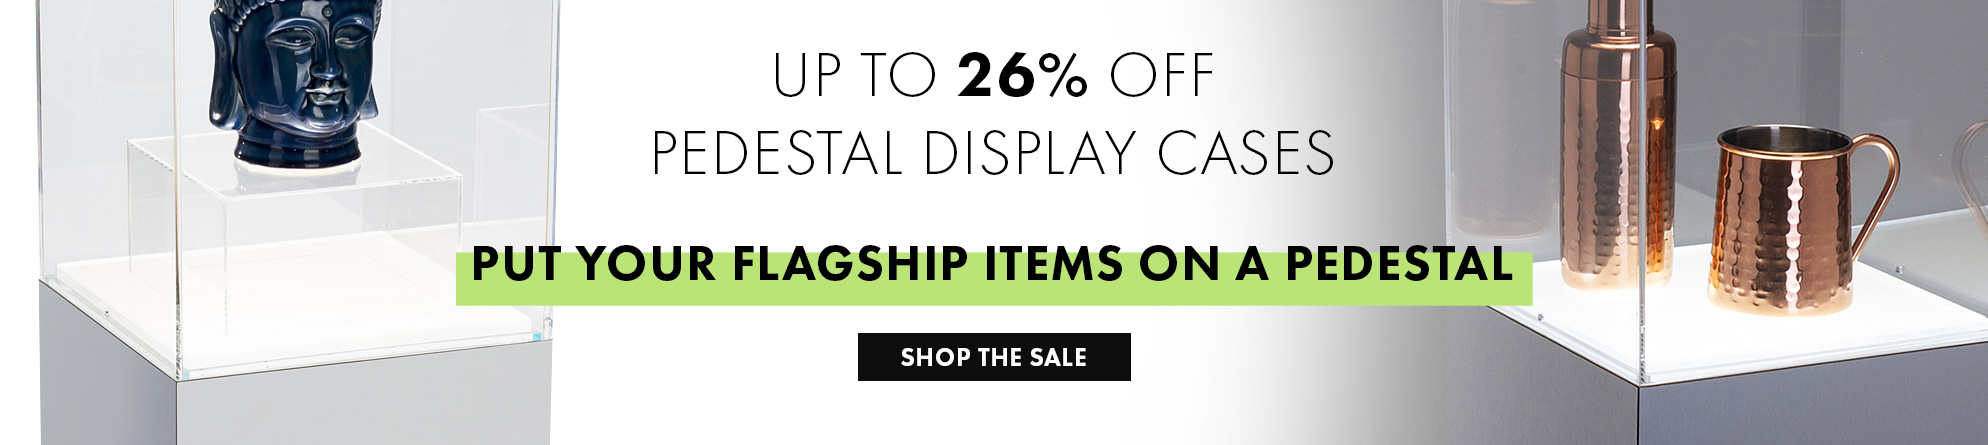 Take advantage of huge savings during our pedestal display case sale!